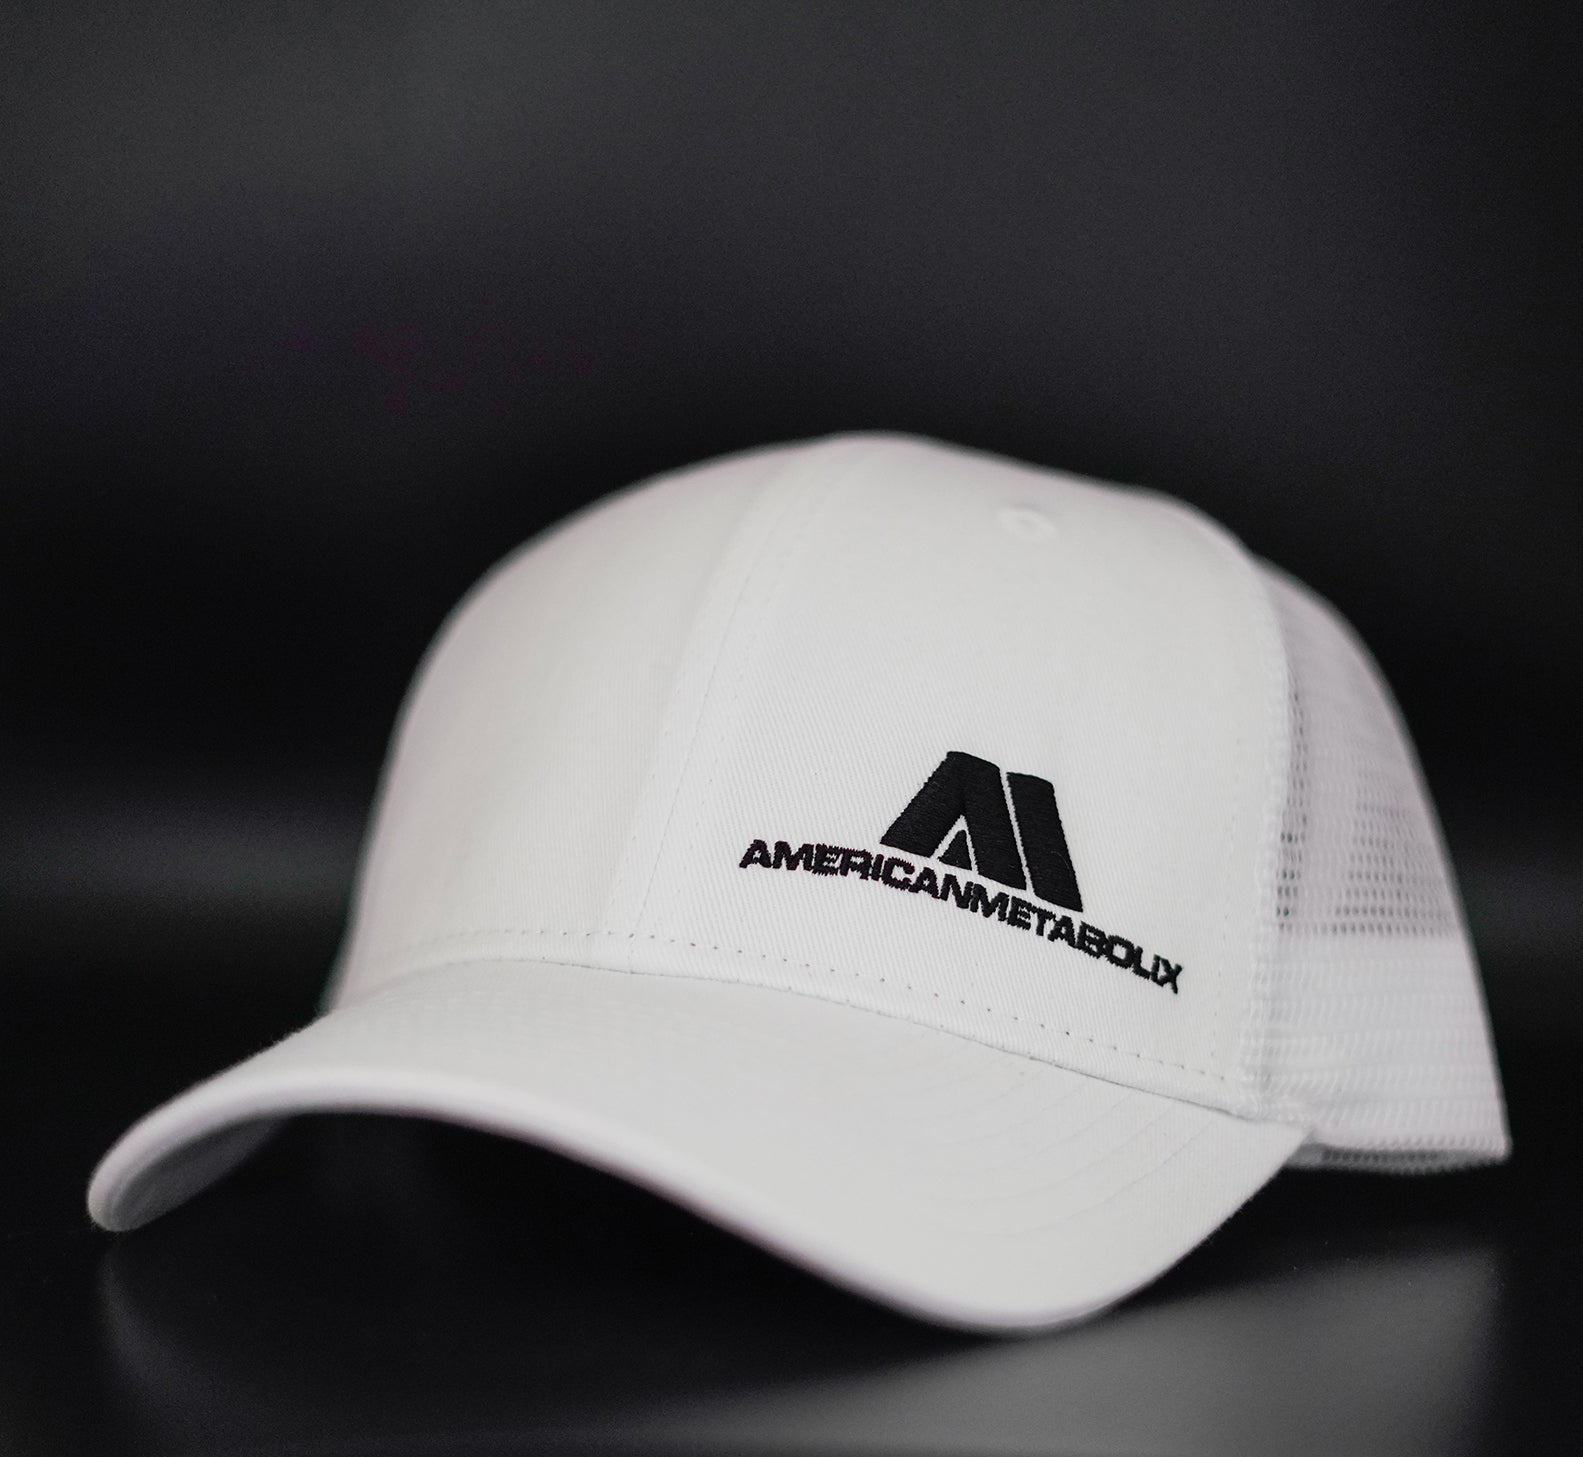 American Metabolix Branded Hat